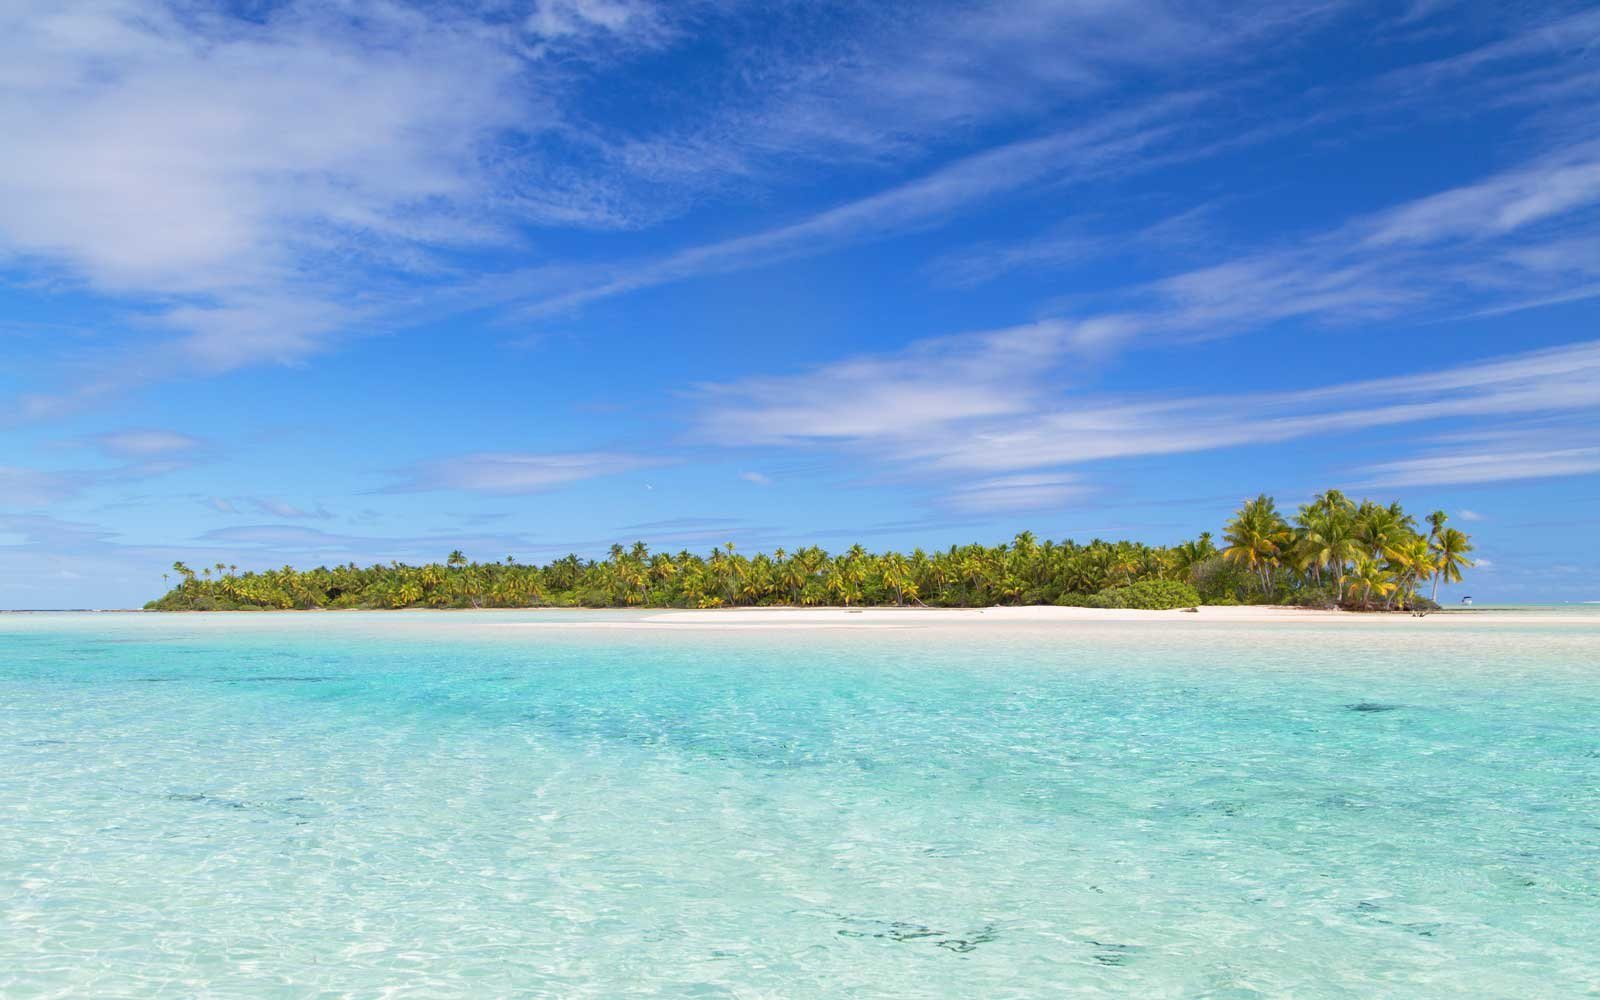 Les Sables Roses pink sand beach, in French Polynesia